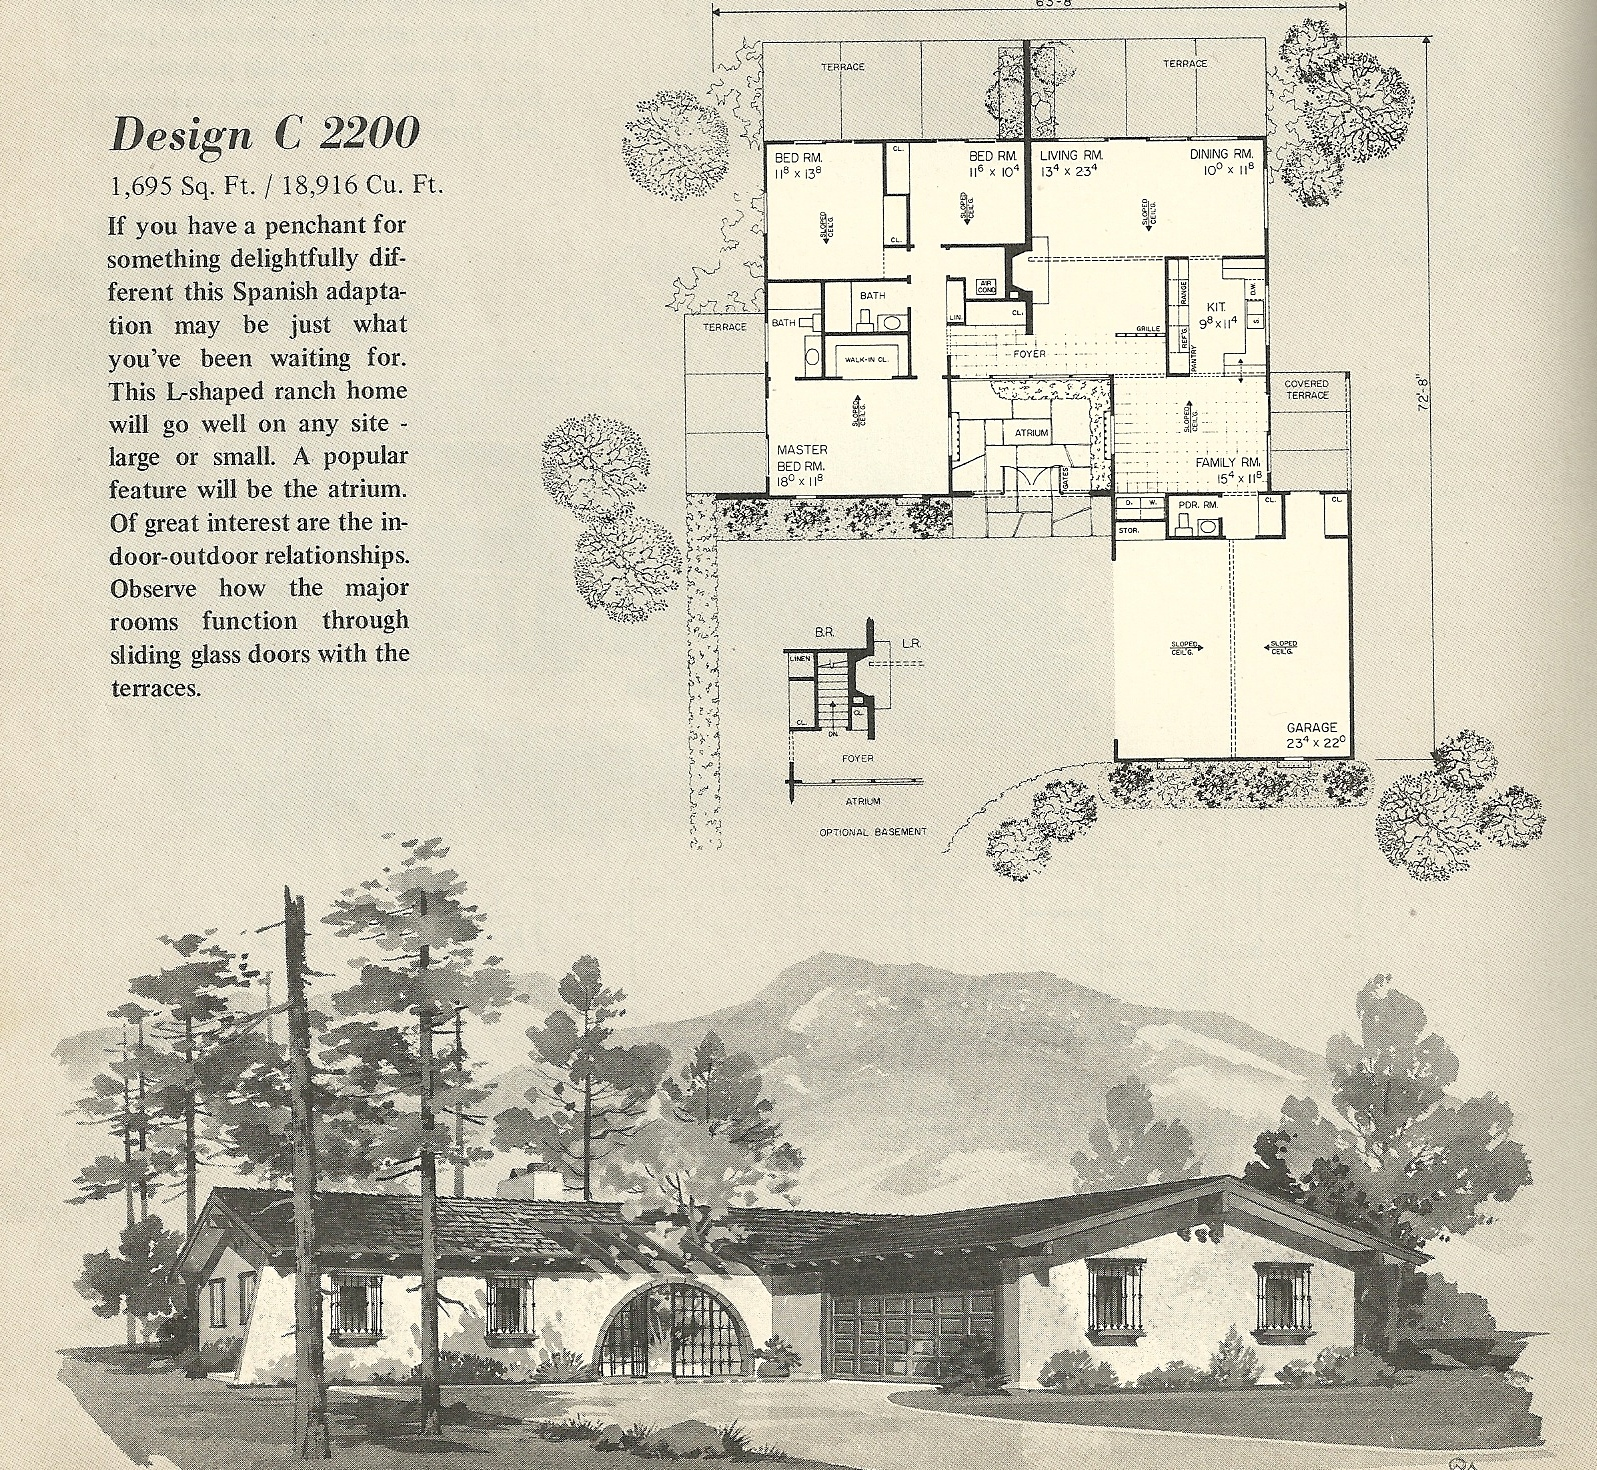 vintage house plans 2200 antique alter ego